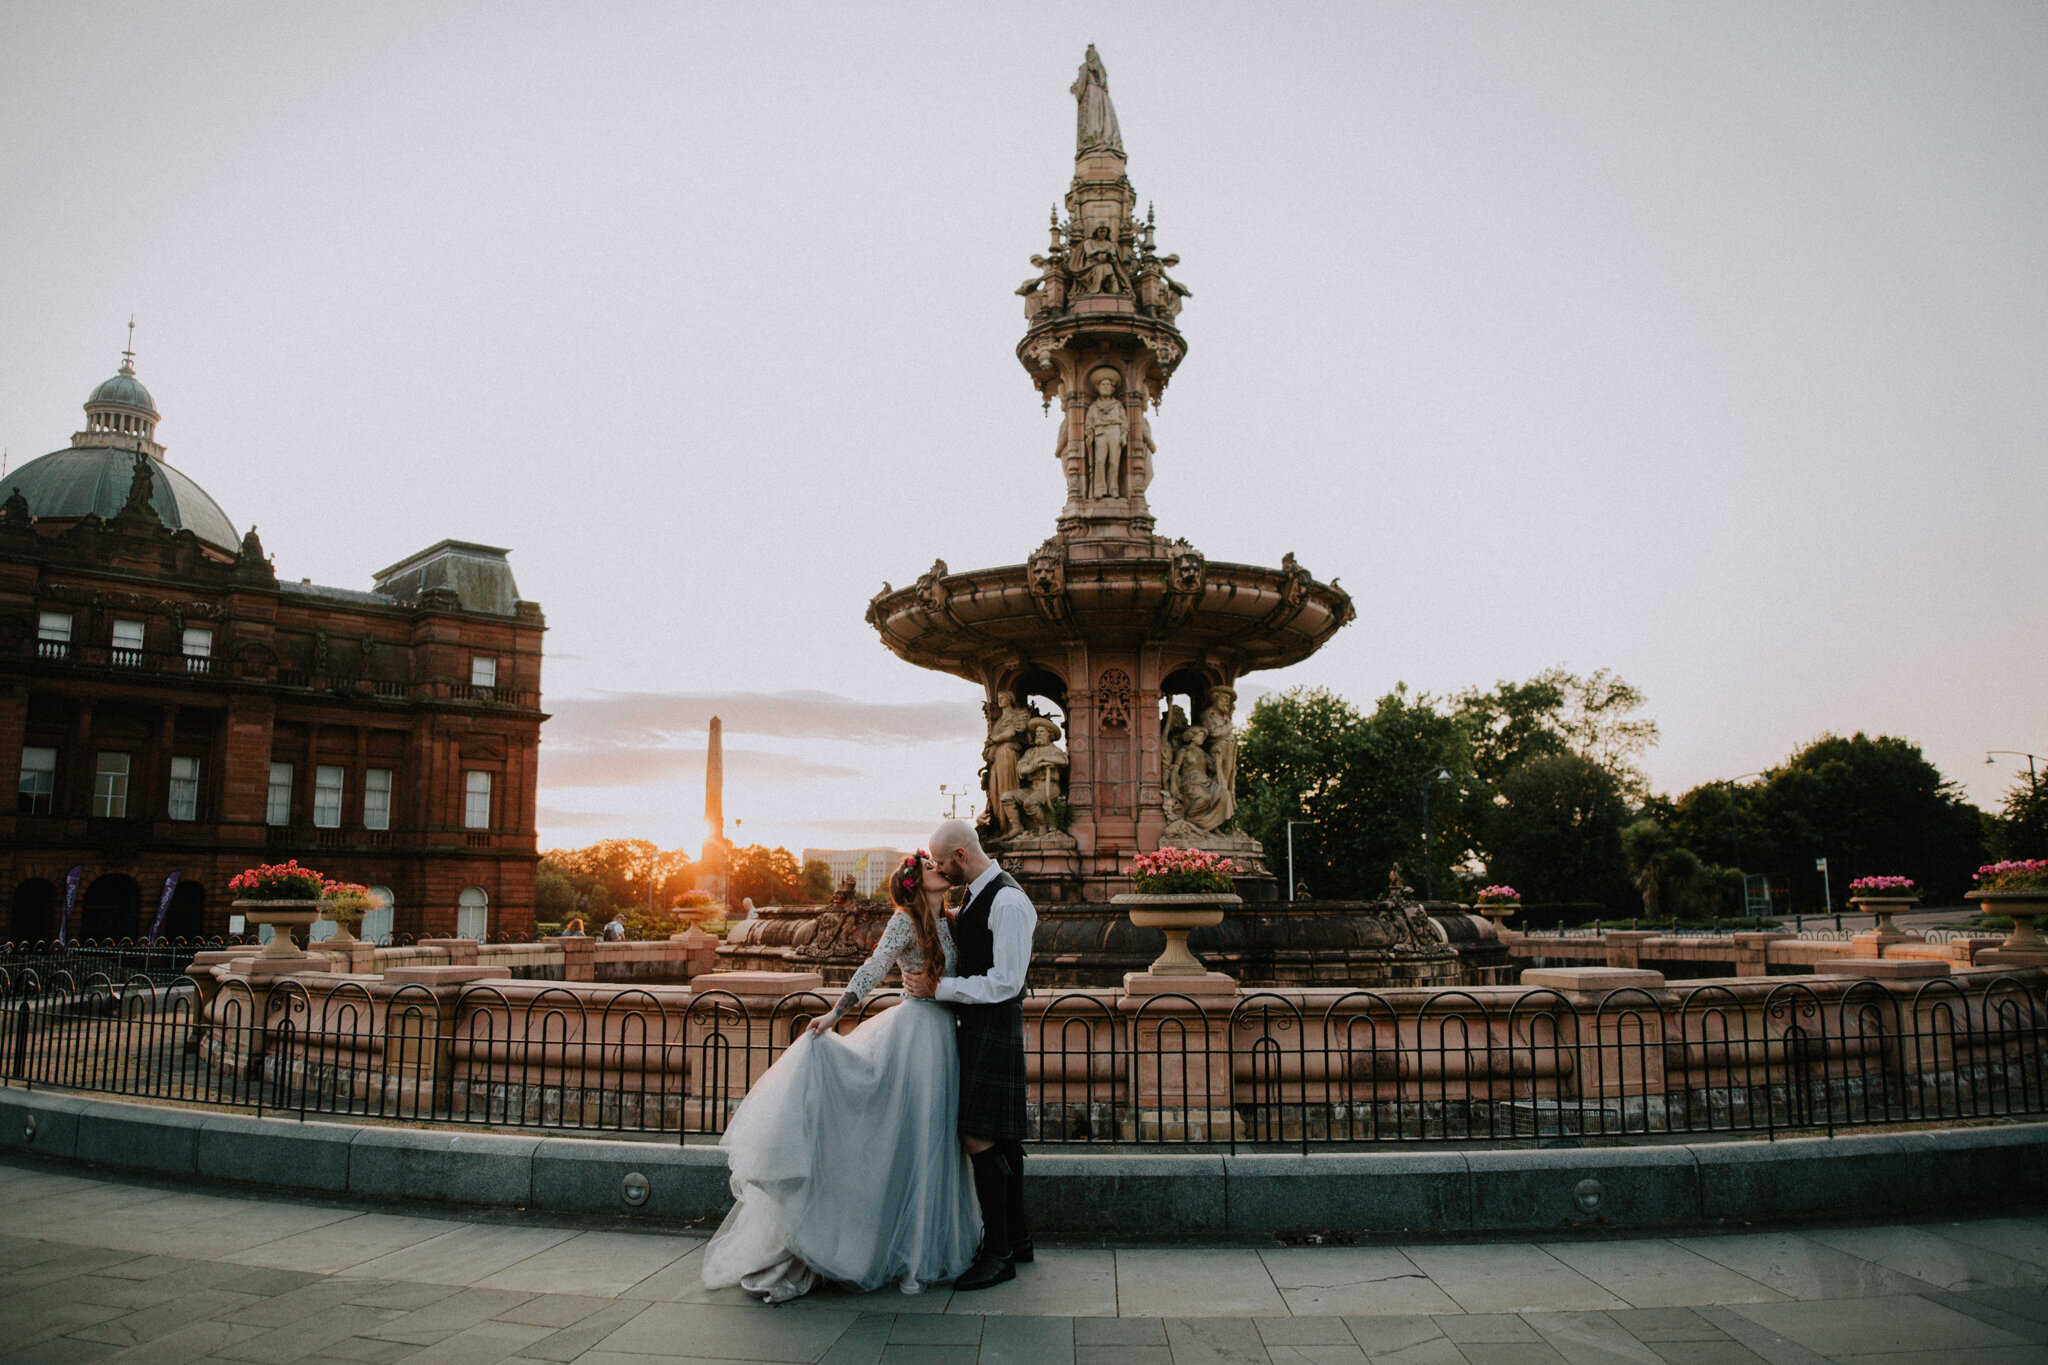 A romantic and epic couple portrait shot during the golden sunset at the fountain in Glasgow Green